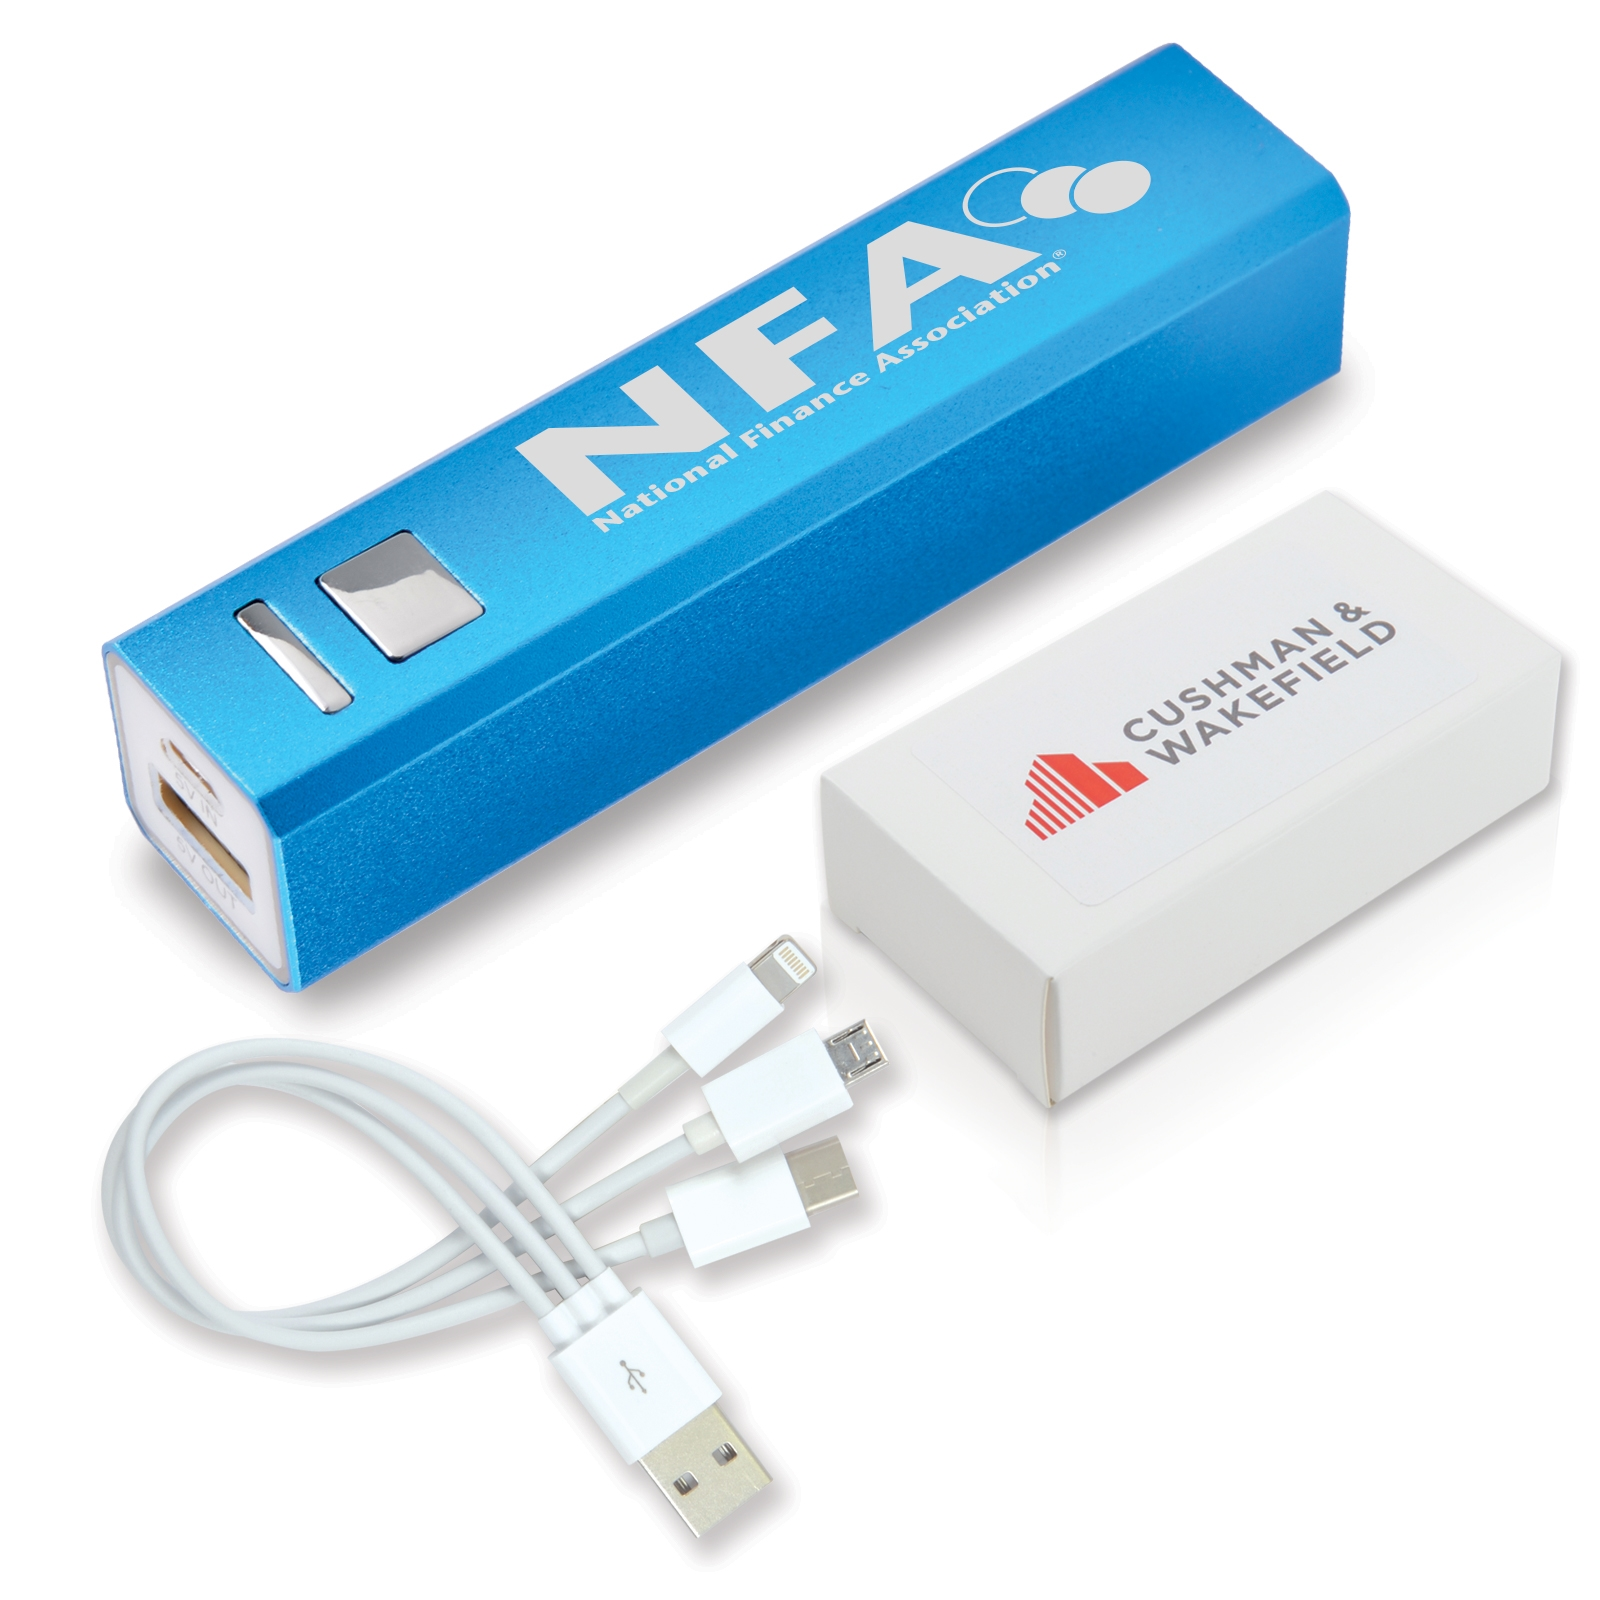 Aluminium Mobile Phone Power Bank - Includes a 1 colour printed logo